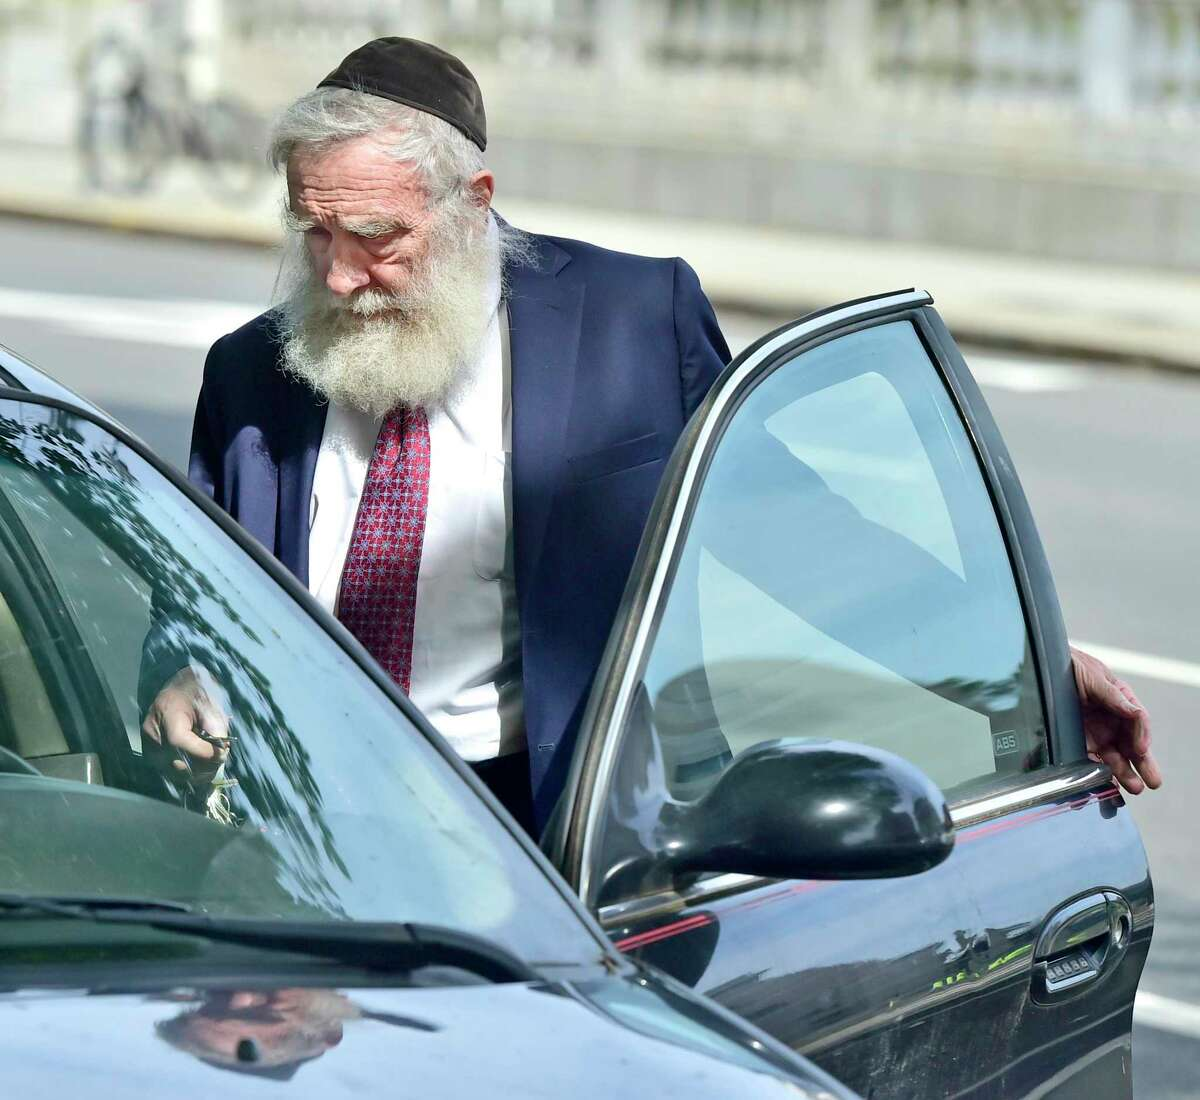 Rabbi Daniel Greer, then 77, of New Haven, leaves New Haven Superior Court on Elm Street in New Haven, Conn. Aug. 14, 2017 after he was arraigned.